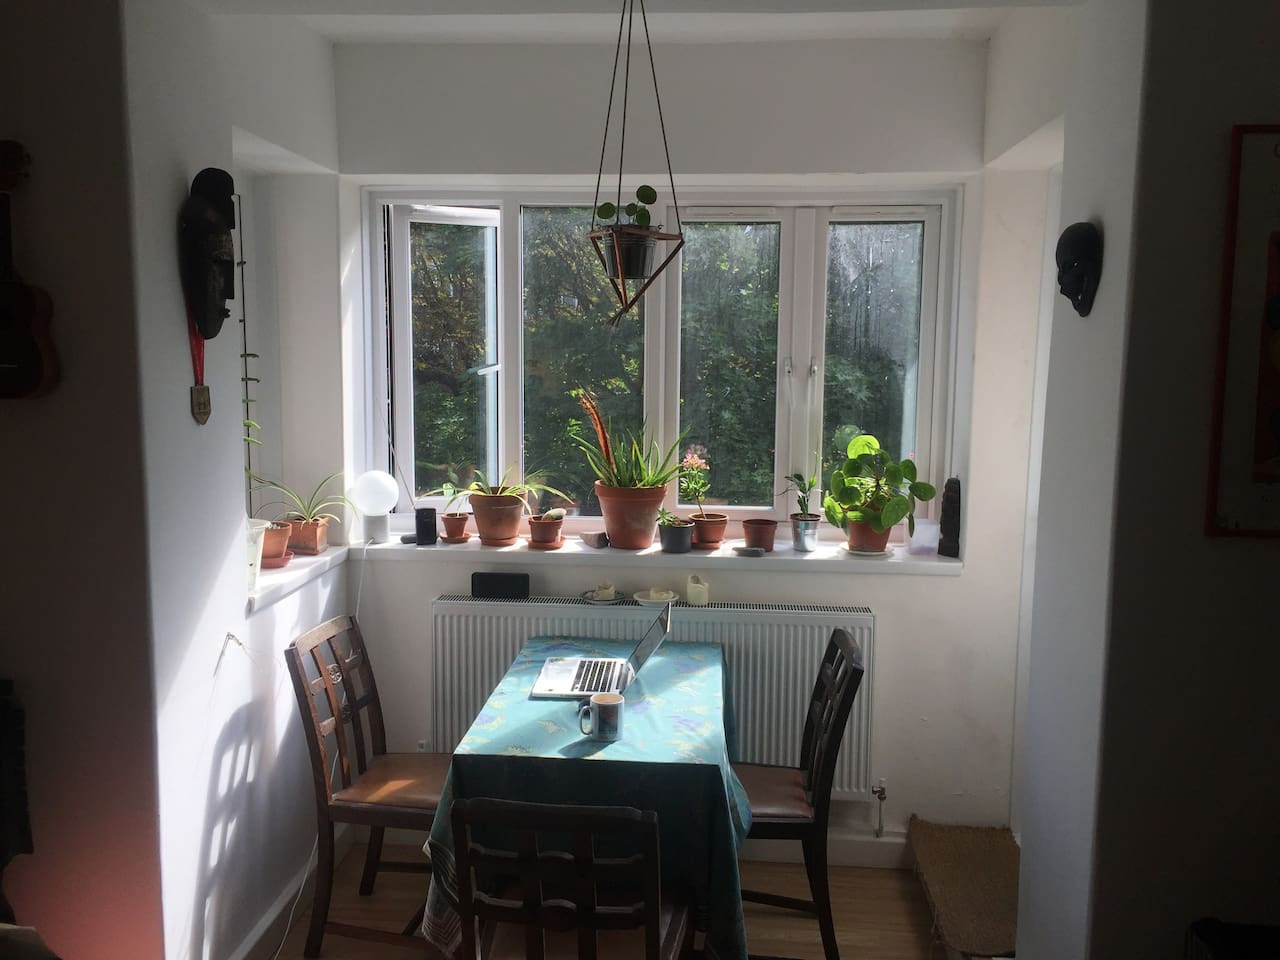 'bay' window with plants and morning sun